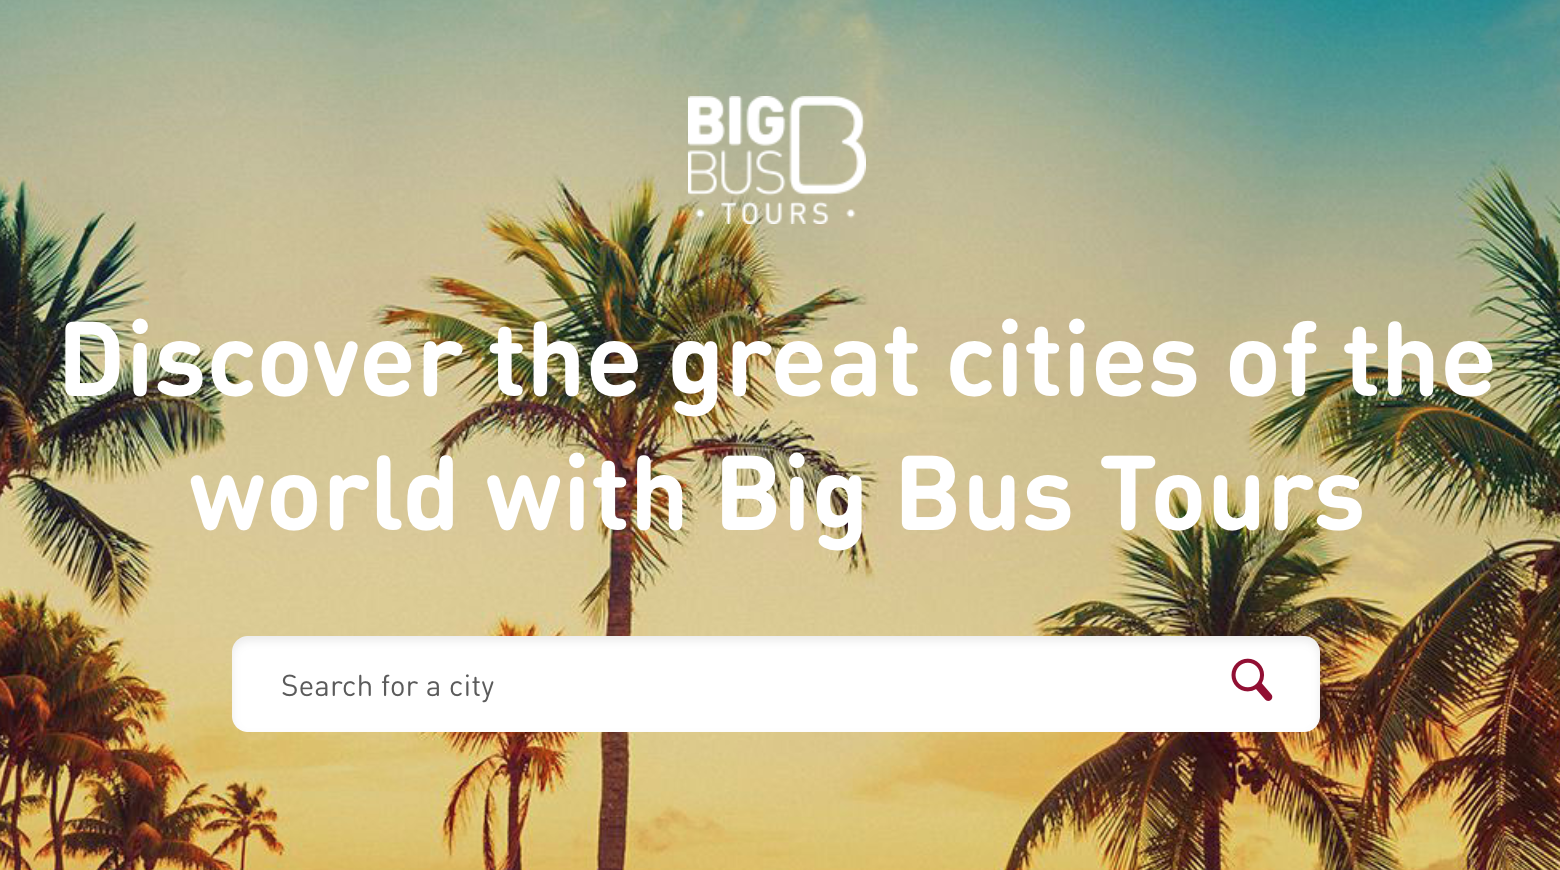 Big bus tours website